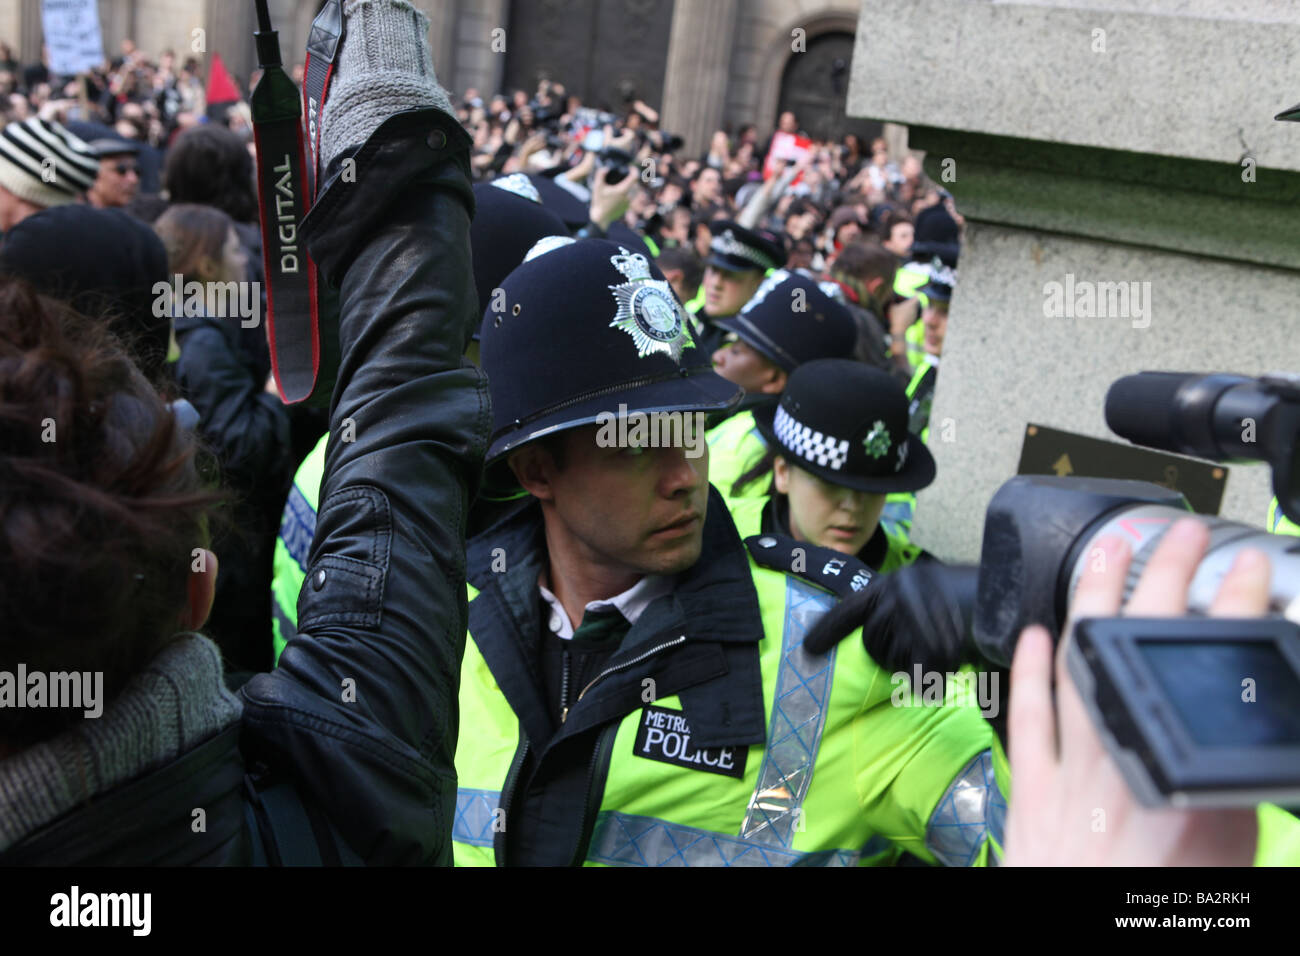 police lined up stopping protesters during the g20 protests in london. they are preventing protesters leaving the - Stock Image